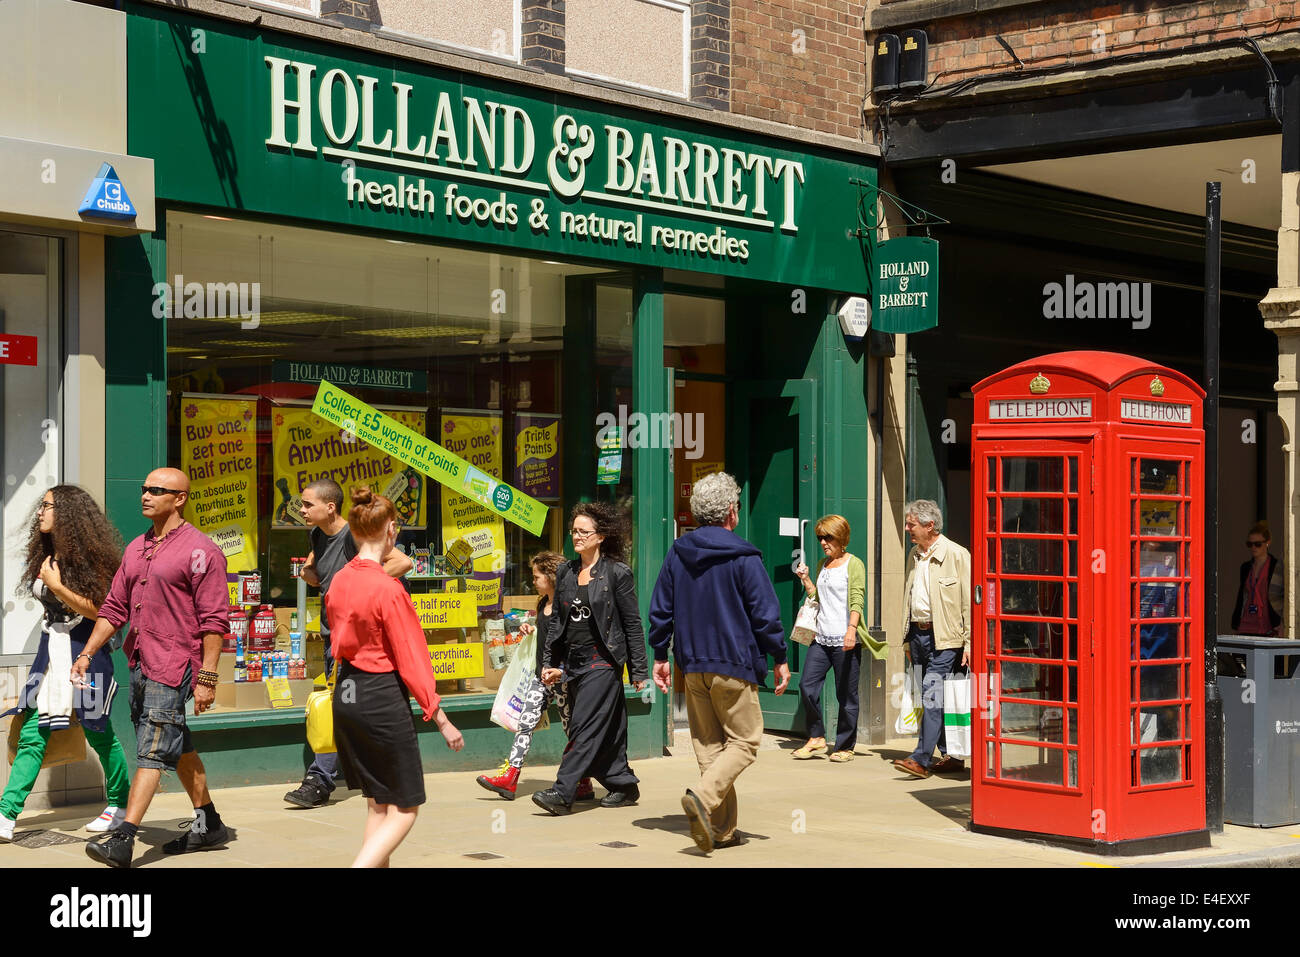 Shoppers in front of a Holland and Barrett store in Chester city centre UK - Stock Image